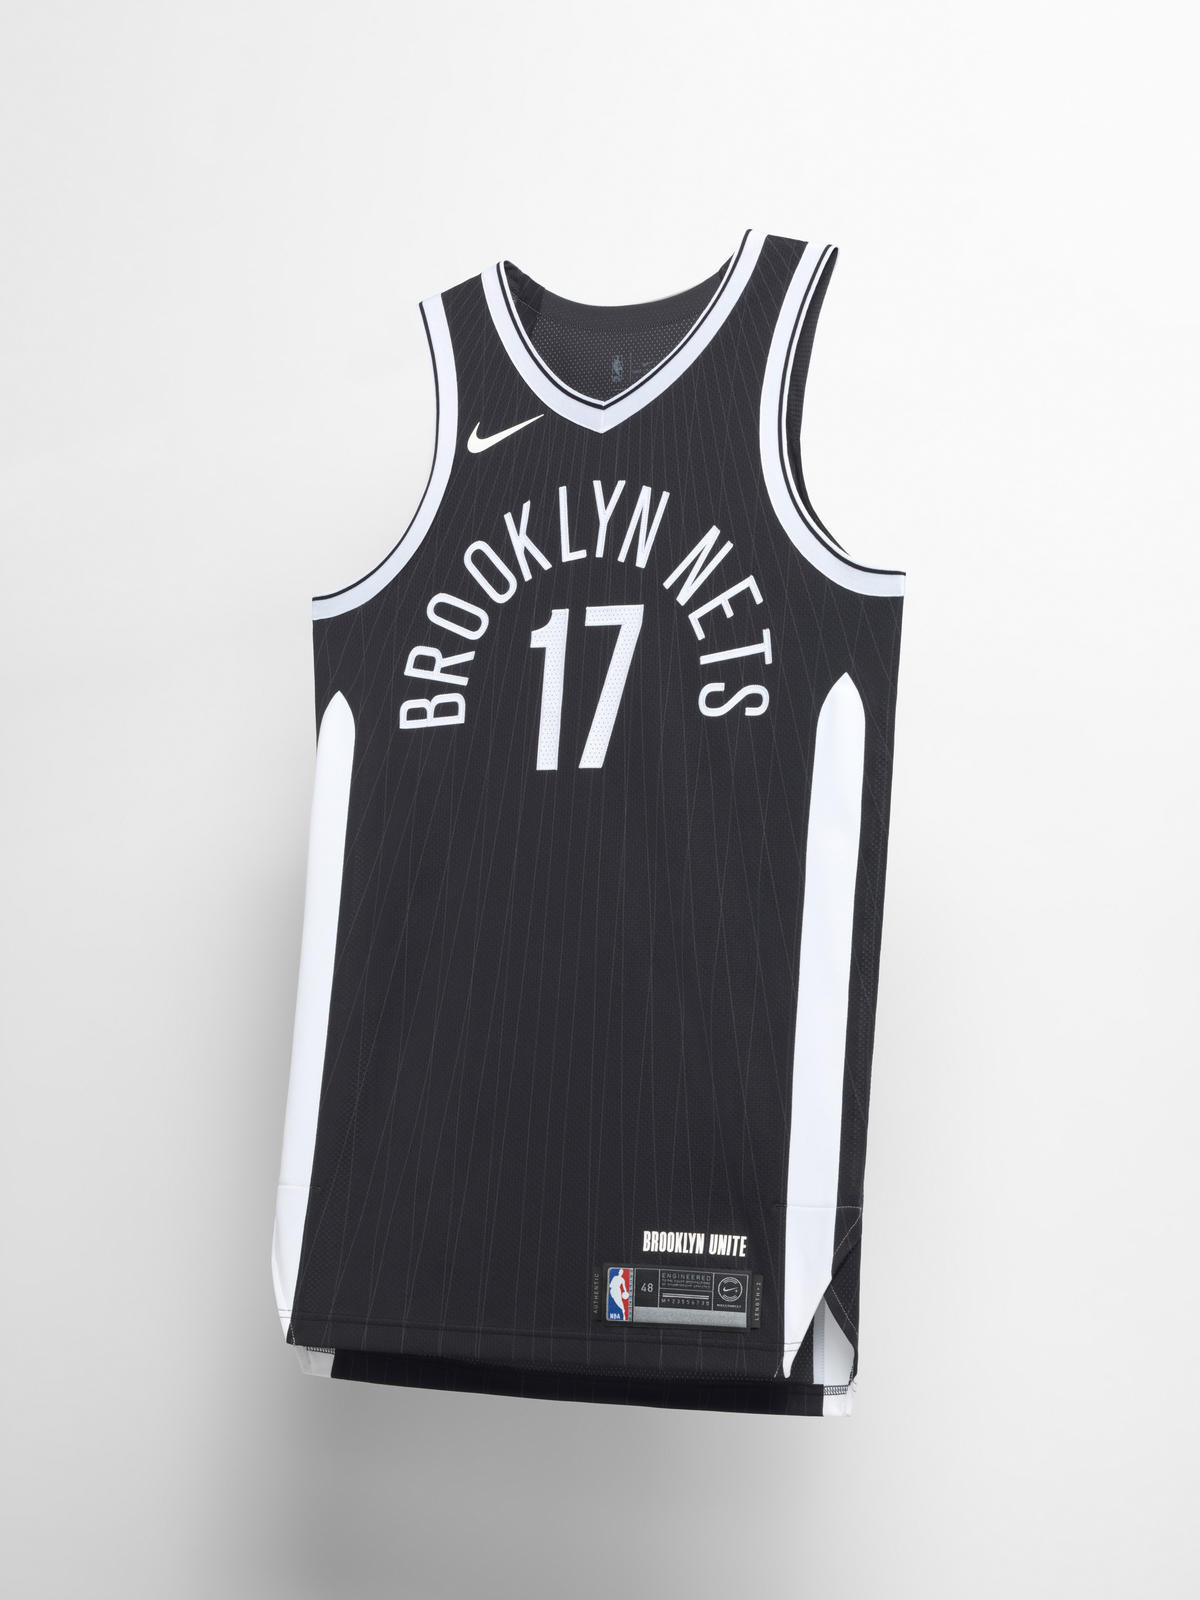 a137392117d8 Nike NBA City Edition Uniform - Nike News